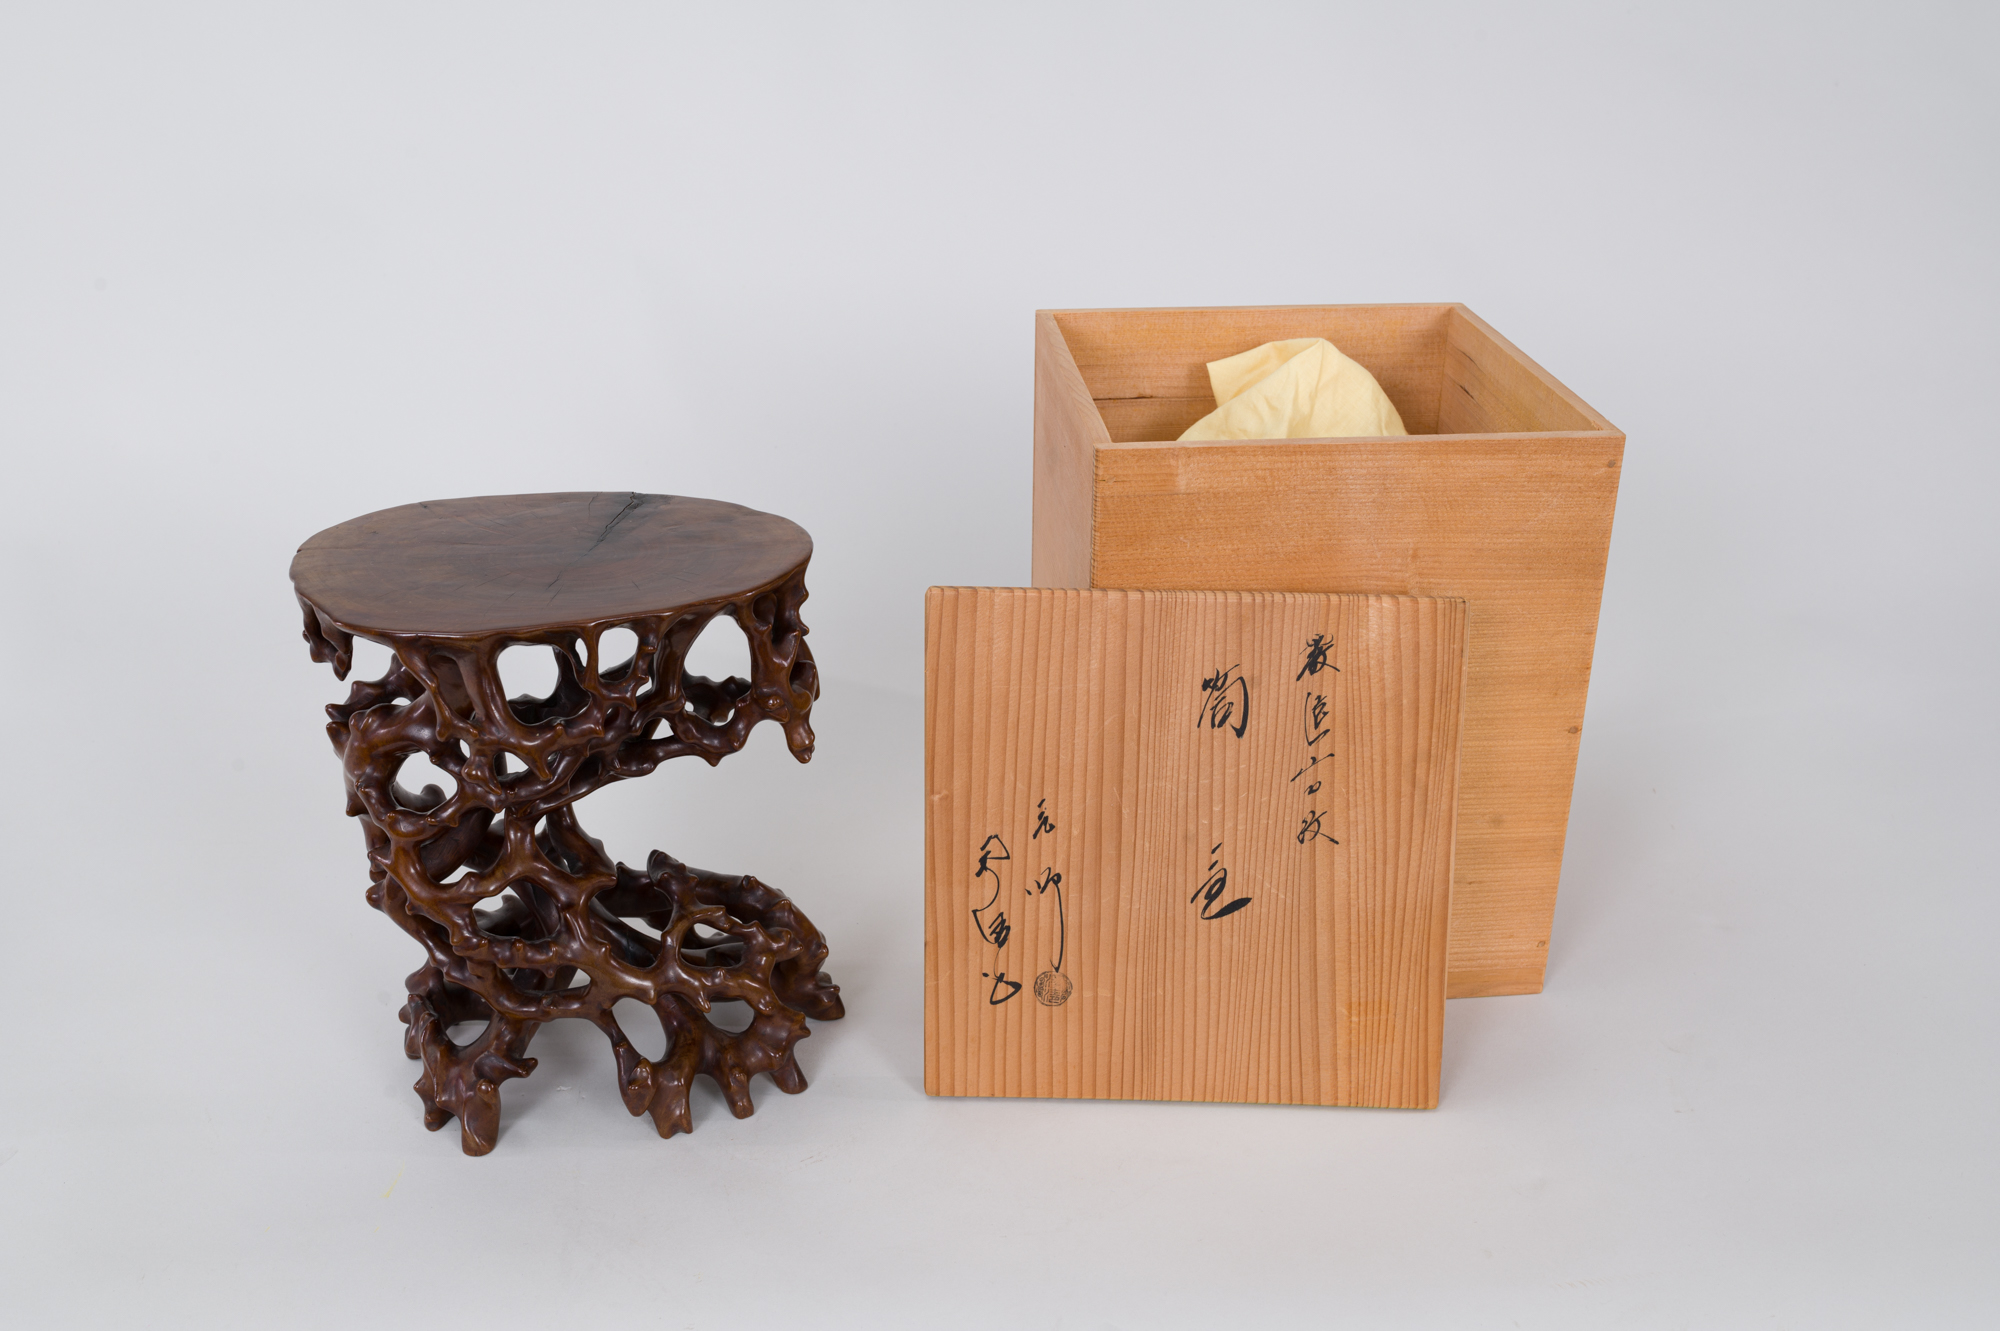 Japanese antique, Japanese art, Japanese root stand